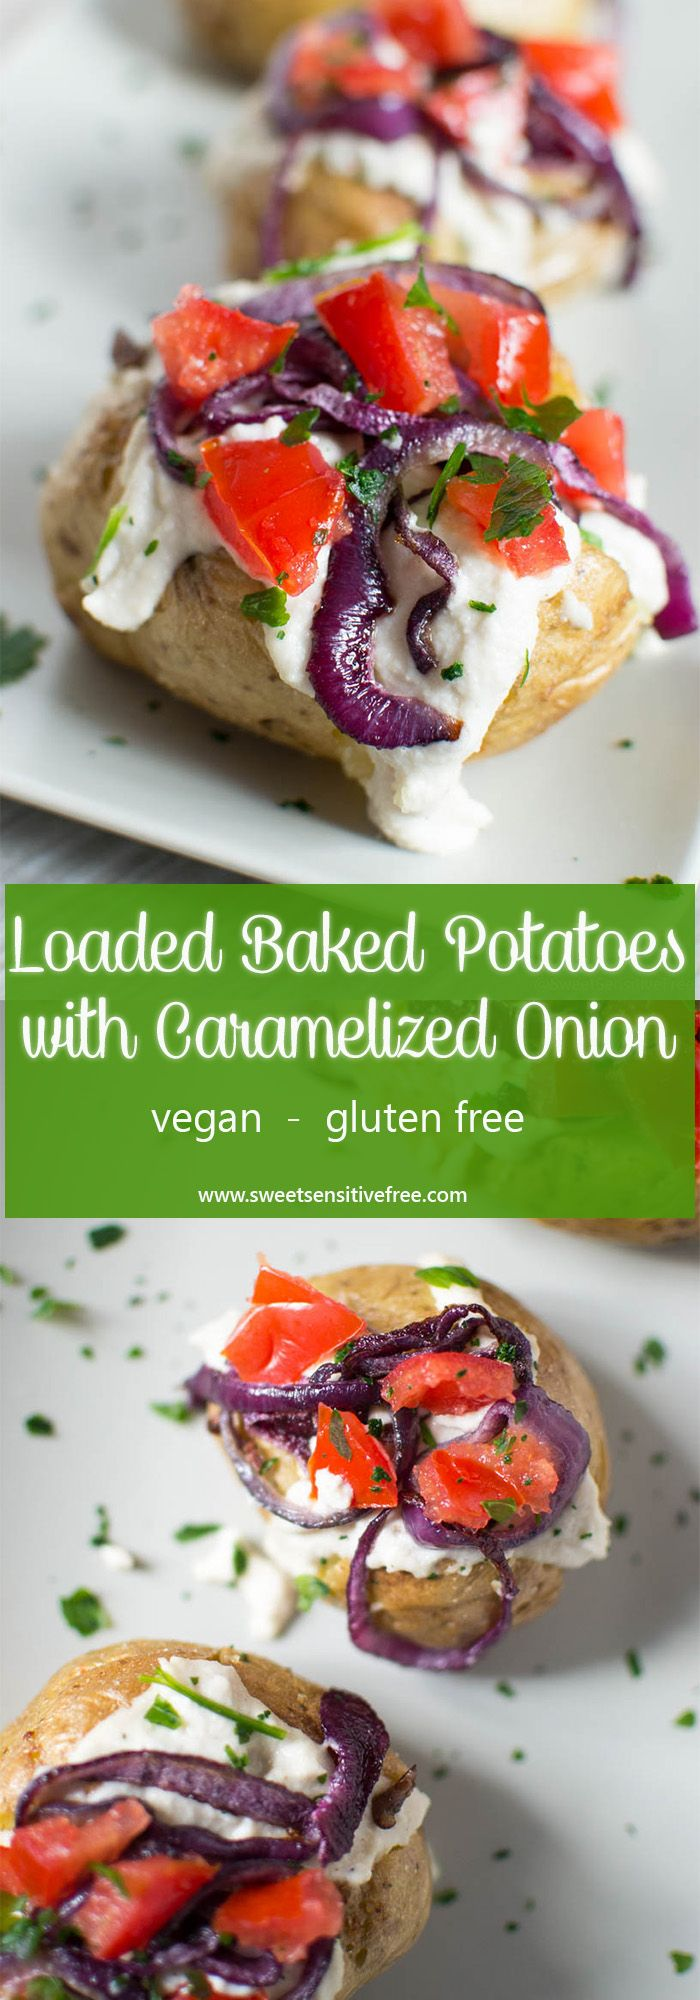 Crispy, comforting, vegan loaded baked potatoes with easy homemade cashew cheese and caramelized red onion on top!  Perfect for a last minute gluten free and vegan dinner!